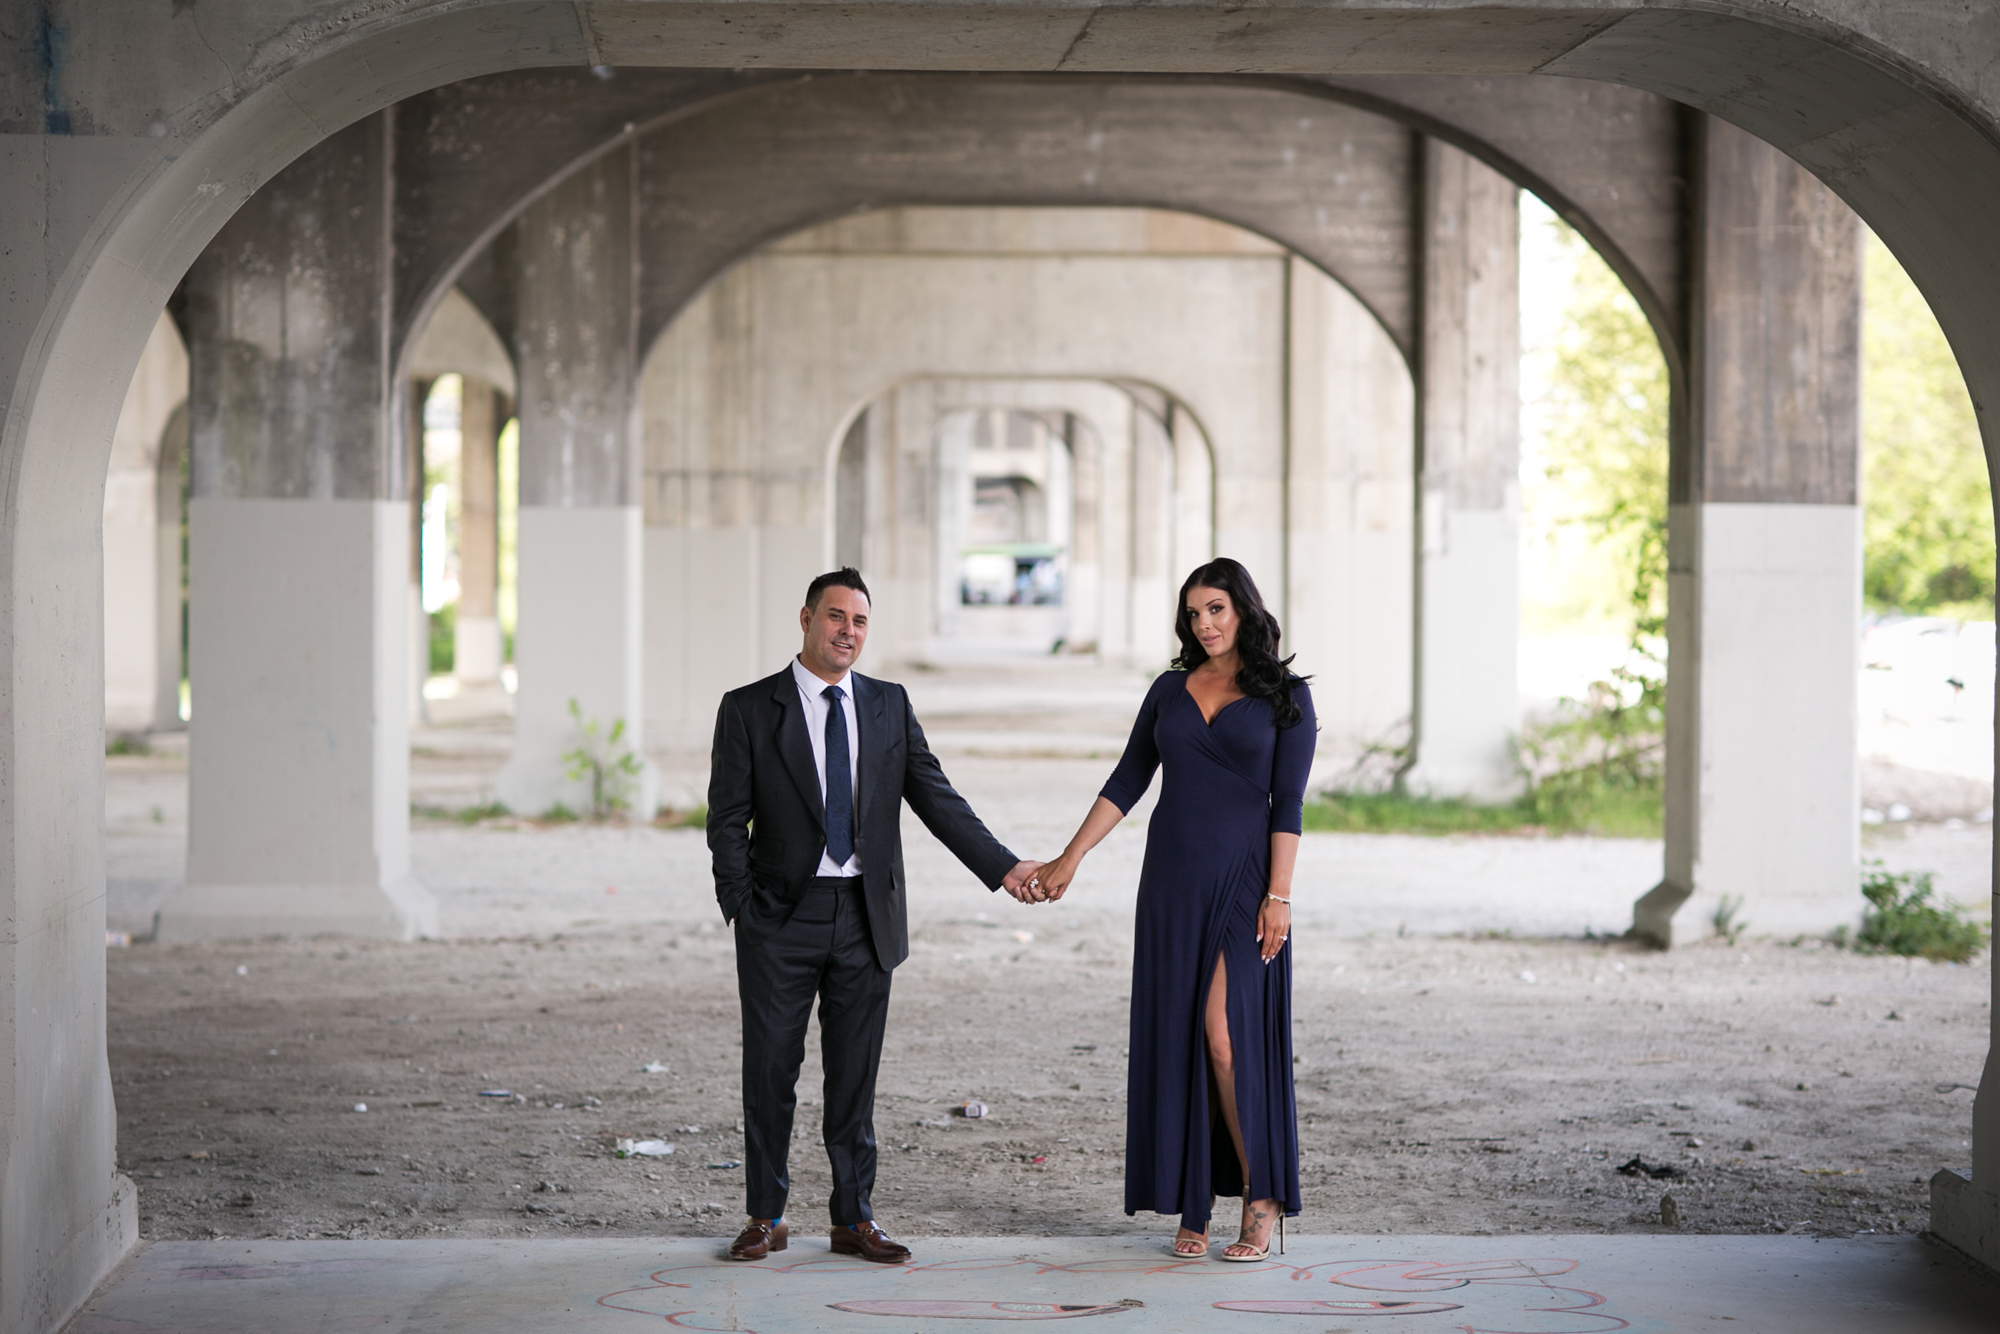 vancouver-luxury-engagement-photographer-lori-miles-003.jpg